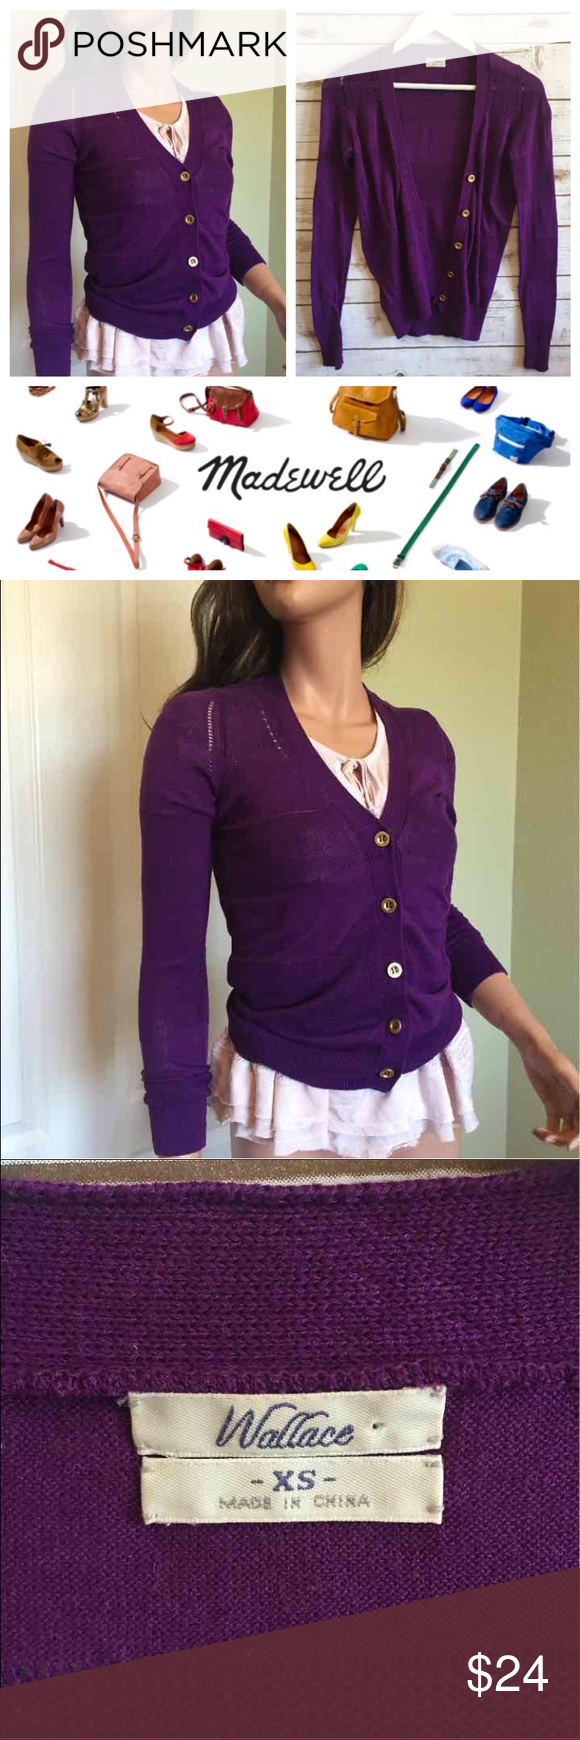 MADEWELL WALLACE Purple Cardigan | Madewell, Cotton and Gold